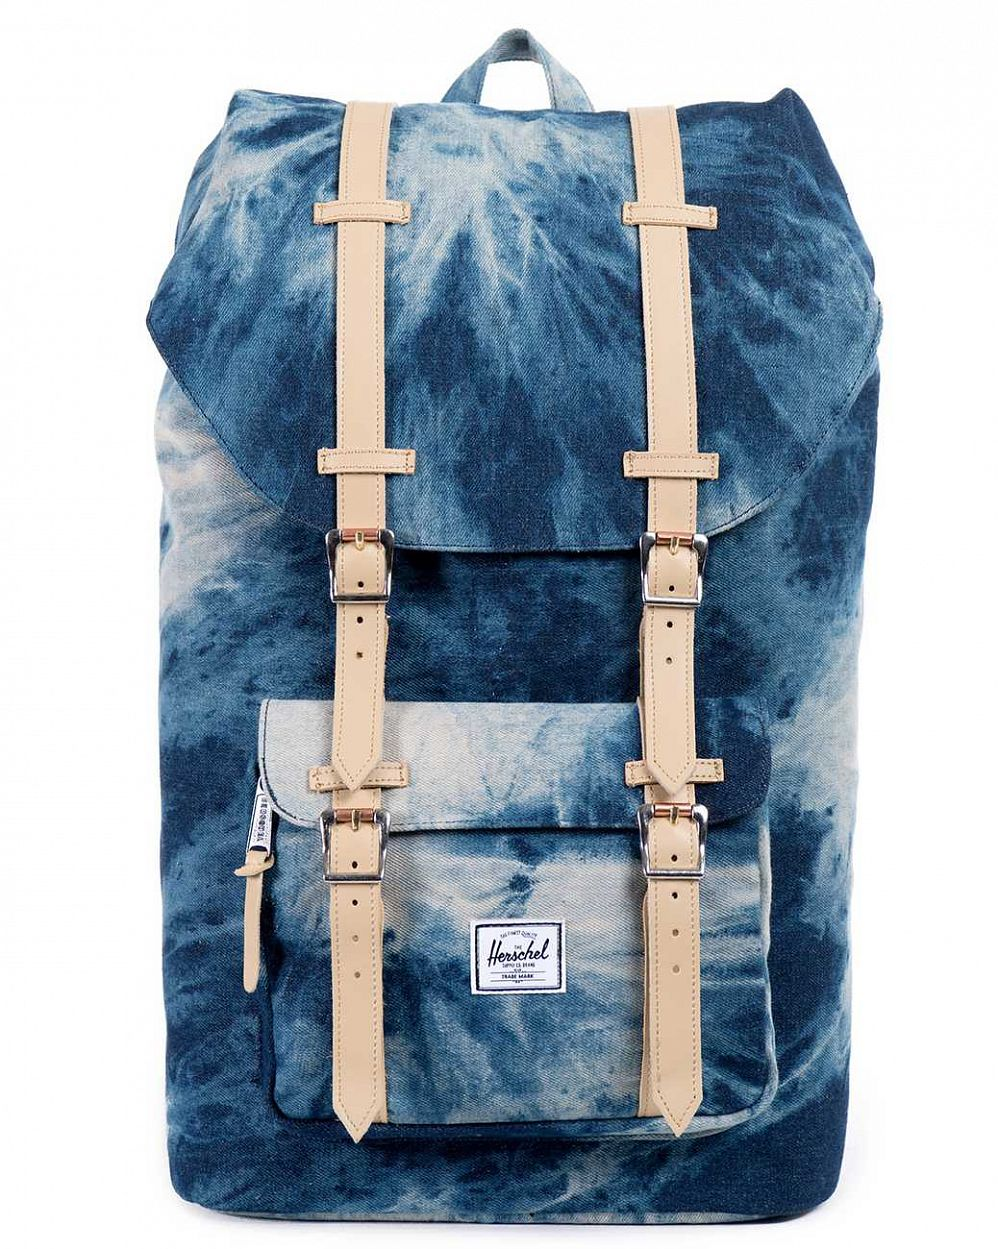 купить Рюкзак Herschel Little America Acid Wash Denim Navy Coated Cotton Canvas в Москве